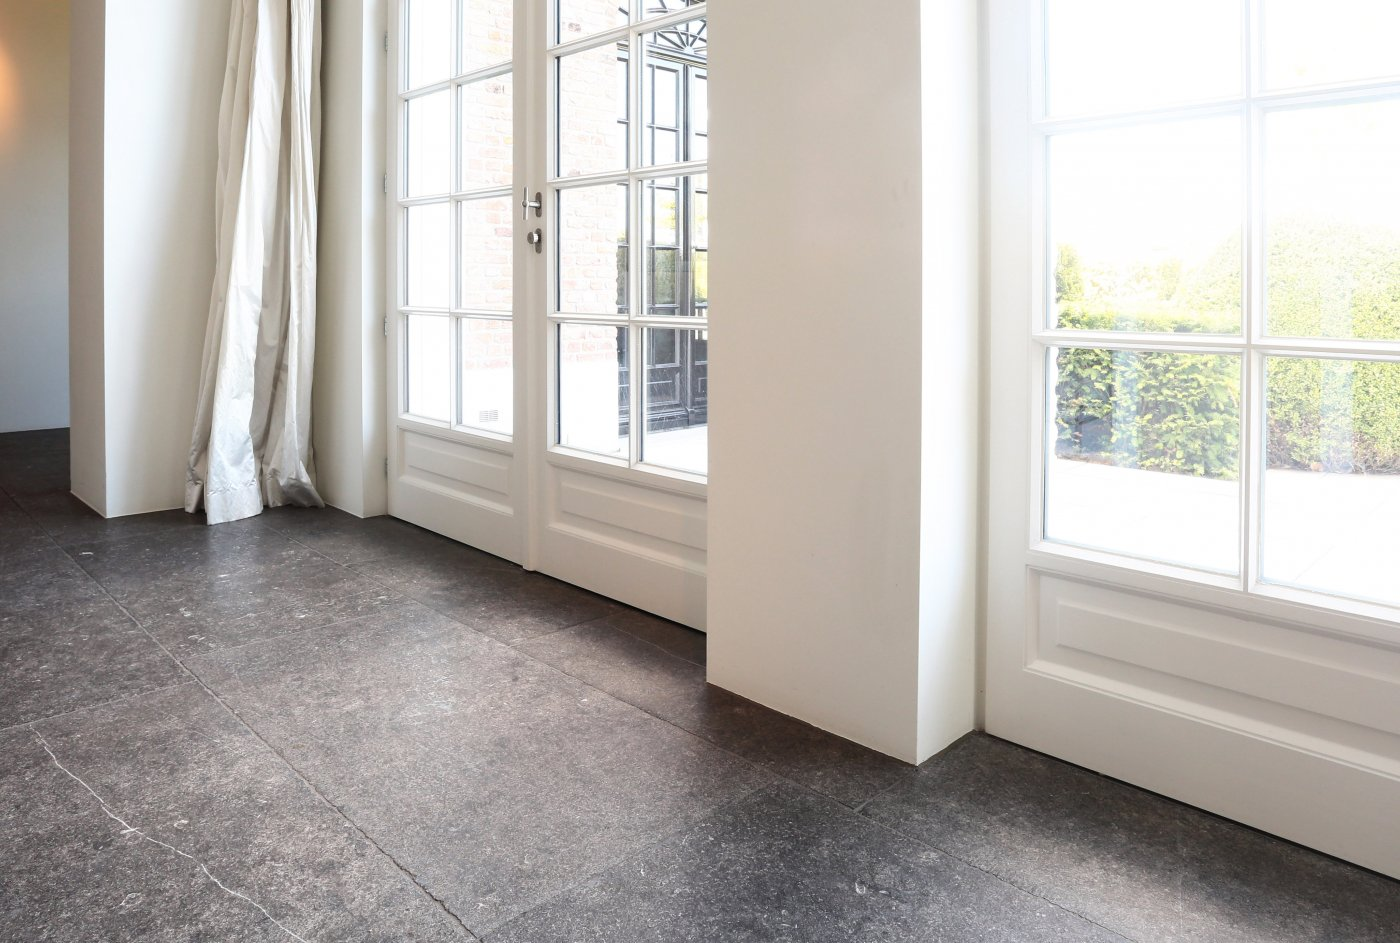 Bluestone floor ref n53 belgian bluestone stone flooring our floor lauthentique is a natural stone floor of belgian bluestone that we age completely manually we work the bluestone floor tiles with different dailygadgetfo Gallery